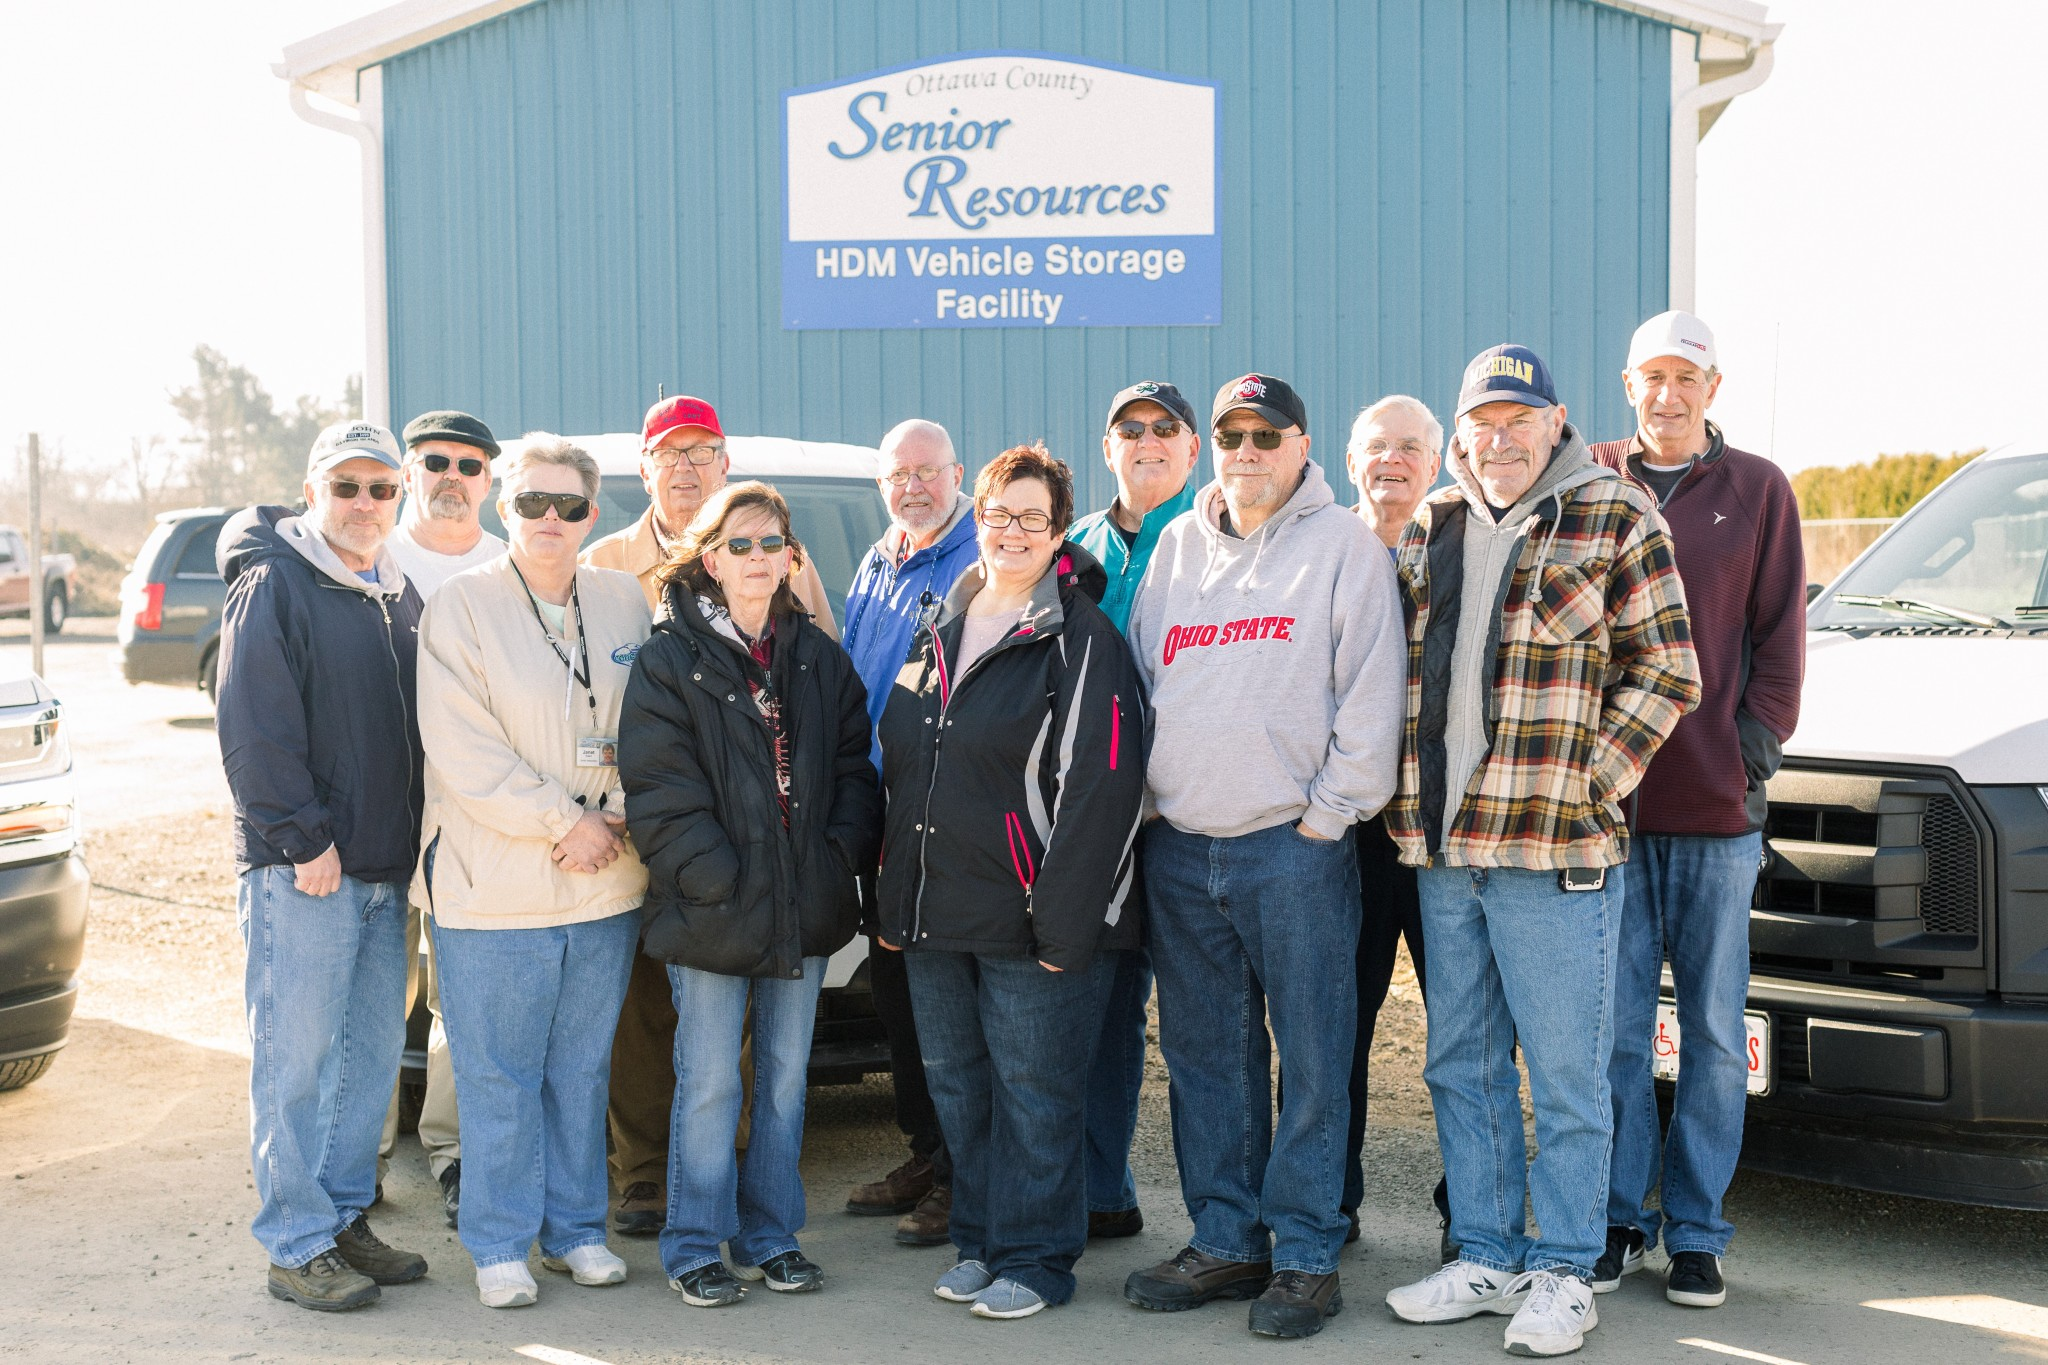 """In celebration of """"Home Delivered Meal Driver Month,"""" Ottawa County Senior Resources honored drivers (front row) Tom Rex, Janet Reed, Carol Holbrook, Dorla Risch, Jim Mizener and Gary Mohrman. (Second row) Eugene Dunfee, Terry Breymaier, Art Blausey, Dean Rothaar, Ray Krofft and Scott Young. Driver Tom Heim is not pictured.  (Submitted photo)"""